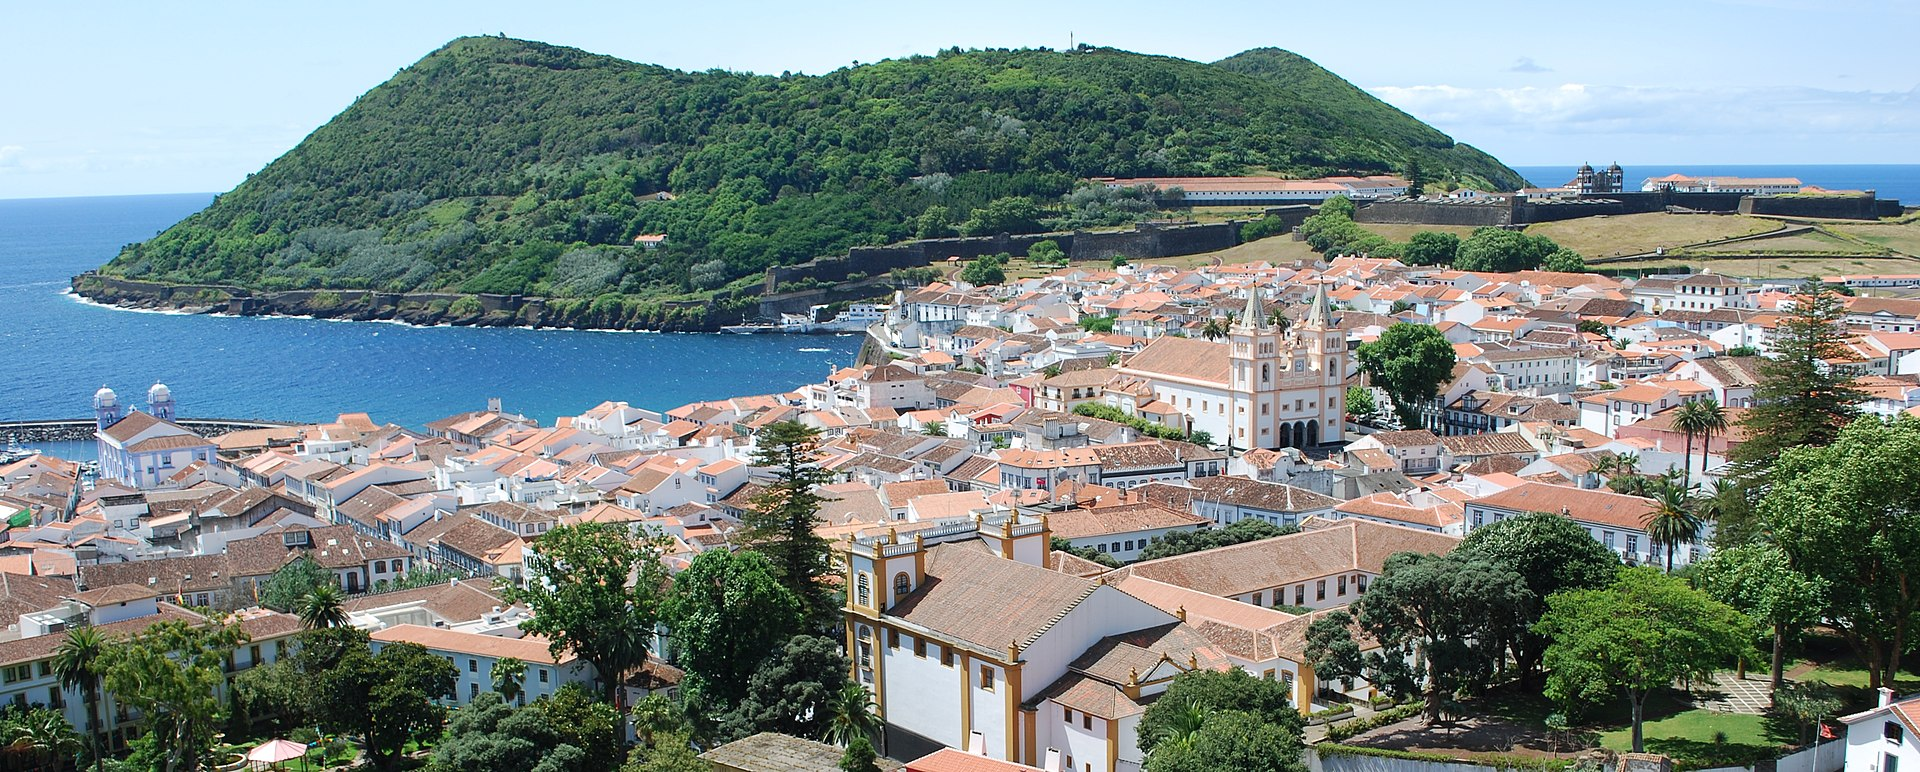 Vista sobre Angra do Heroismo (cropped).jpg